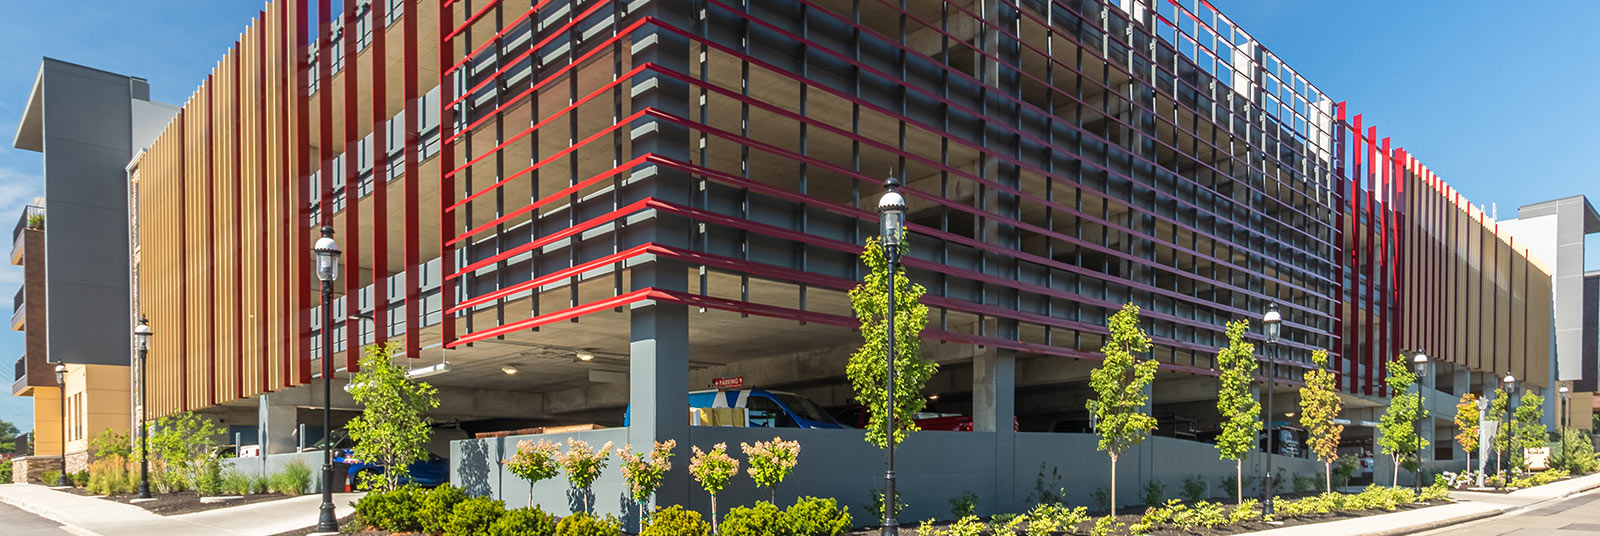 The standalone parking structure at The RED apartments in Cincinnati, Ohio.